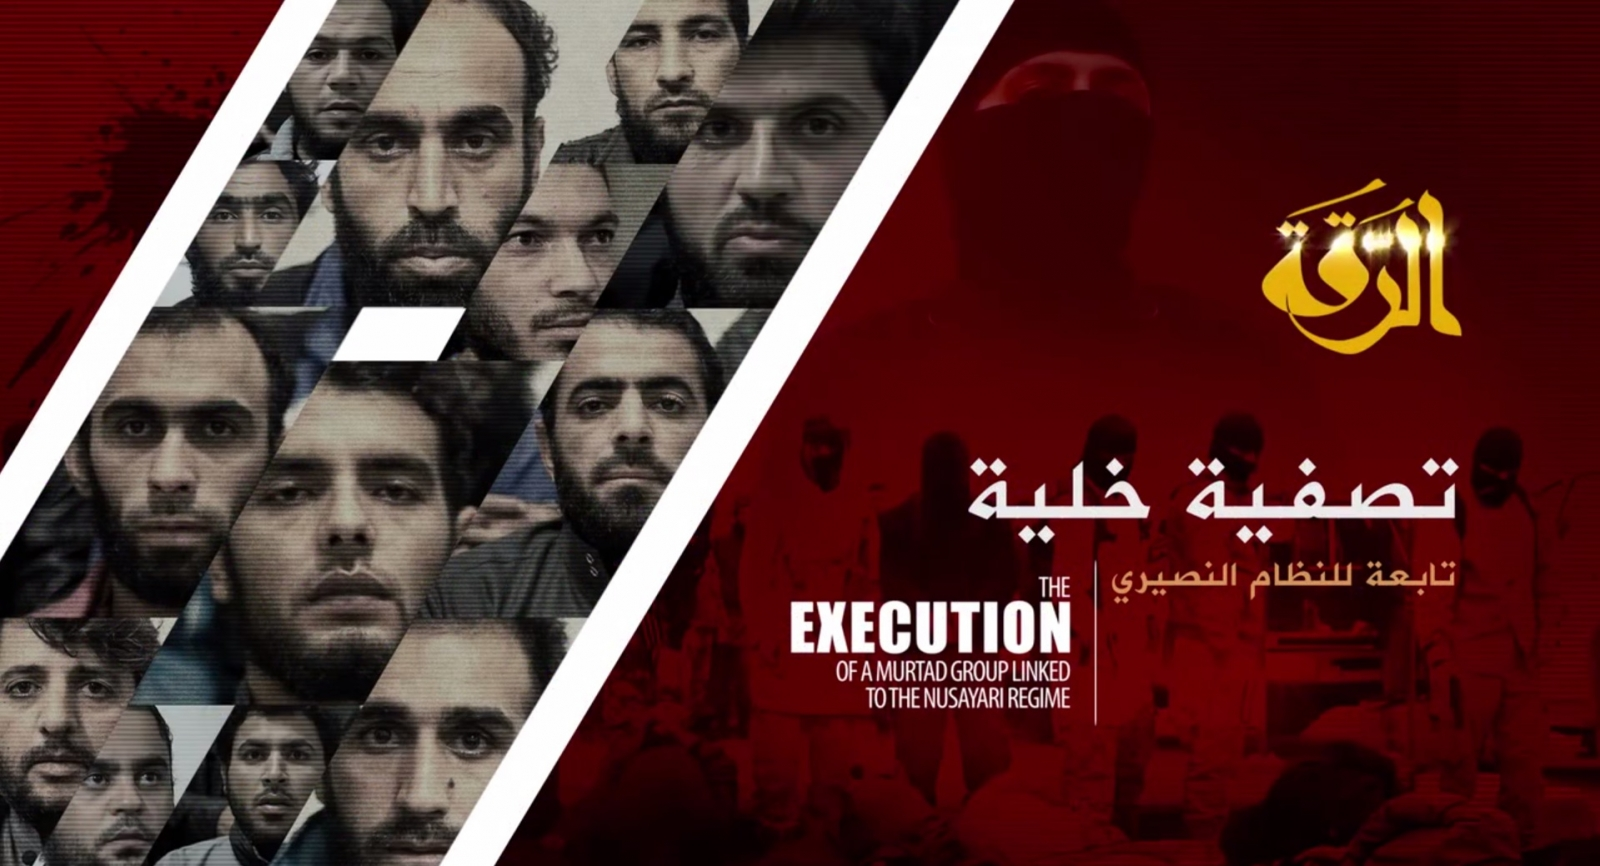 IS Execution video